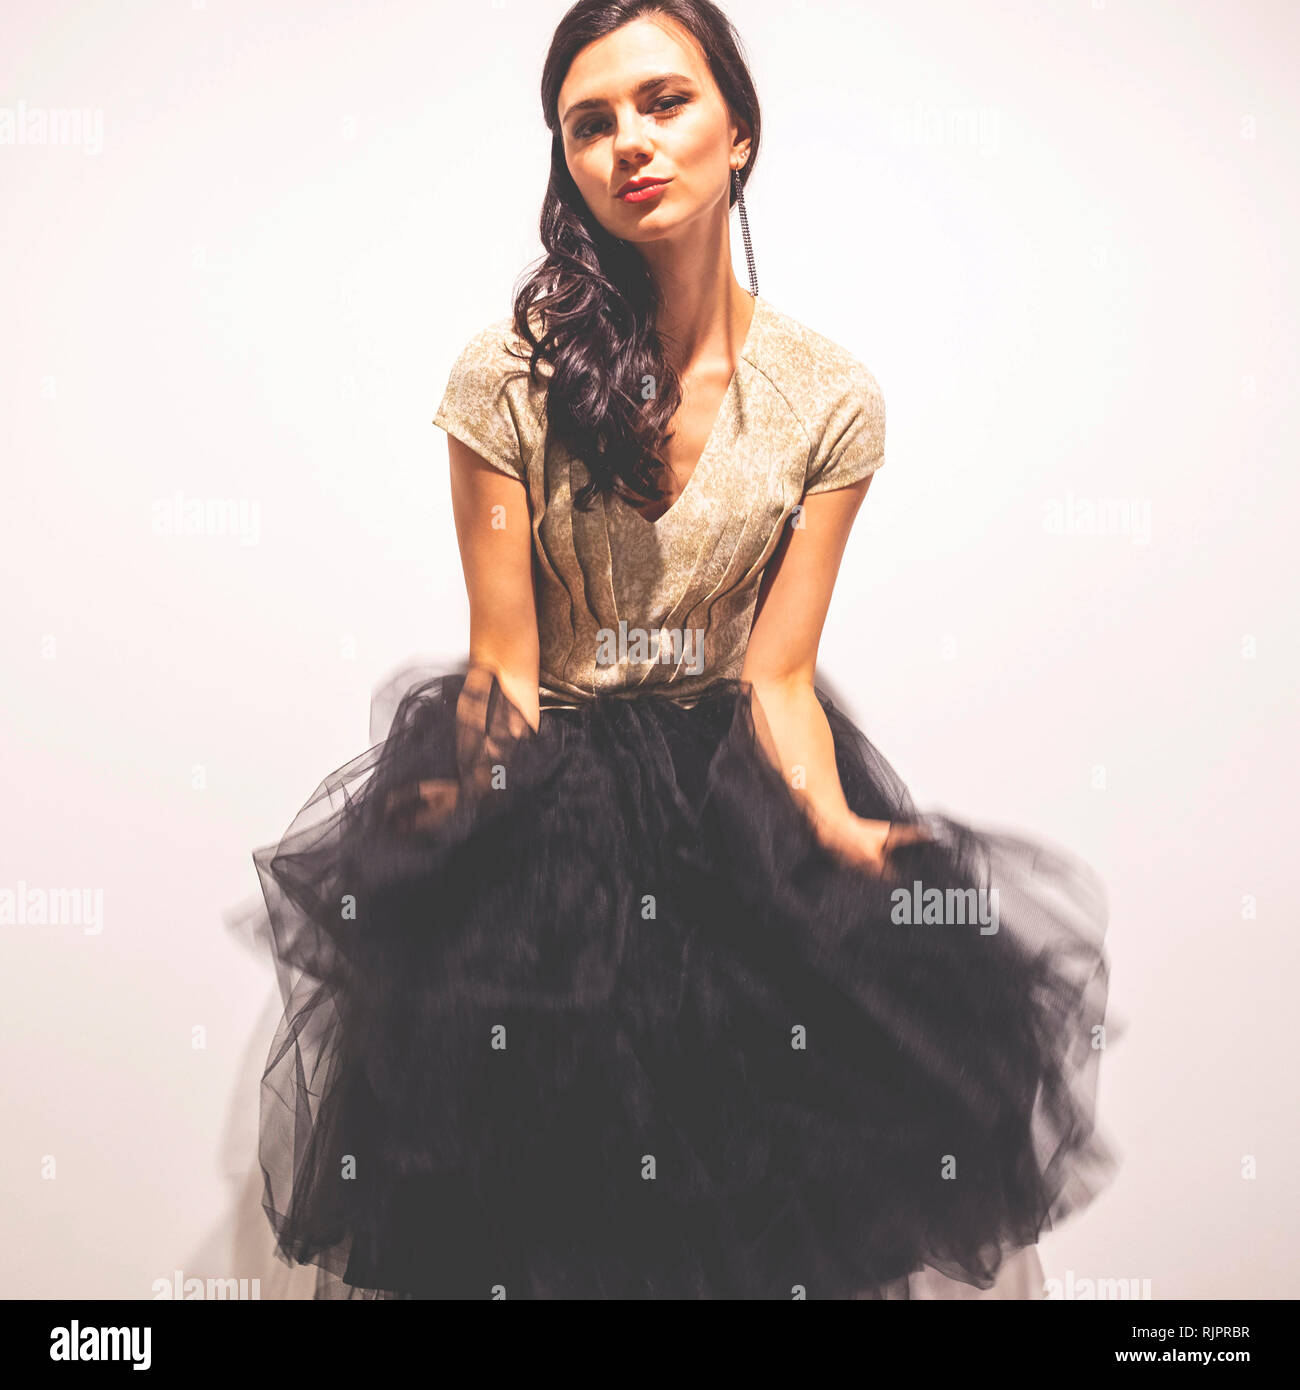 Woman holding tulle skirt dancing Stock Photo